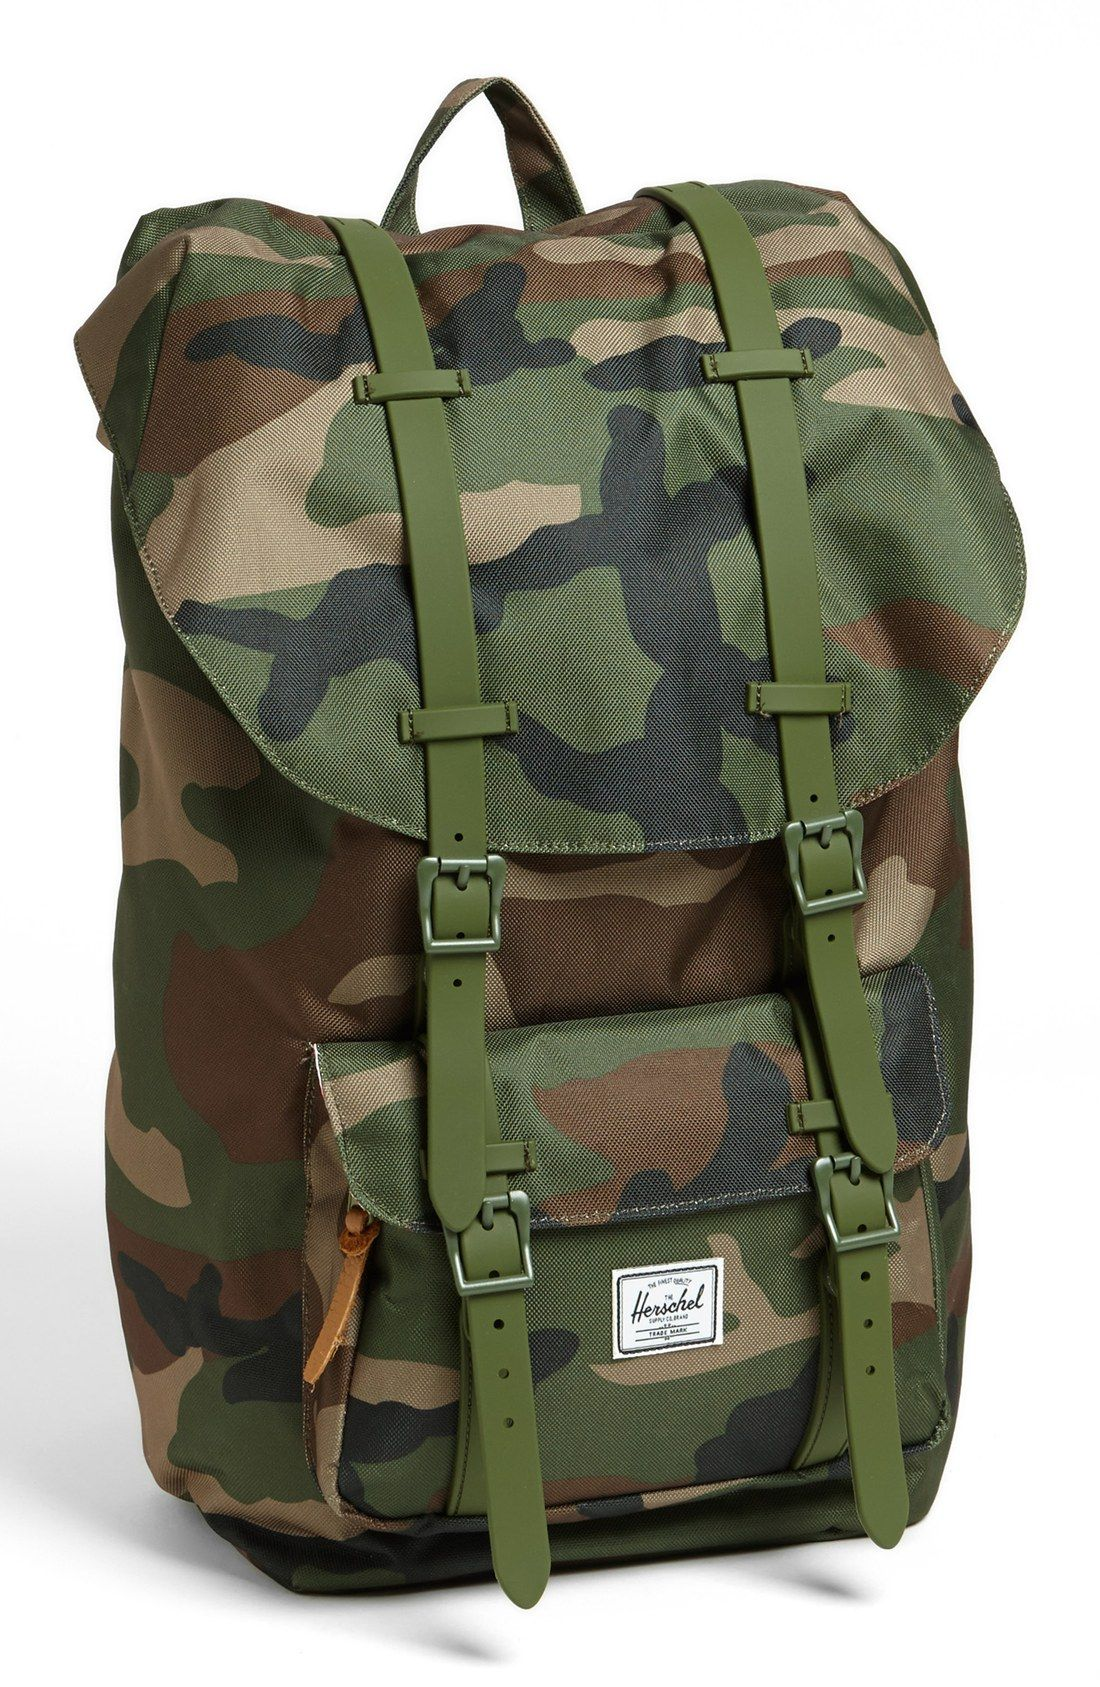 Herschel Backpack Bags